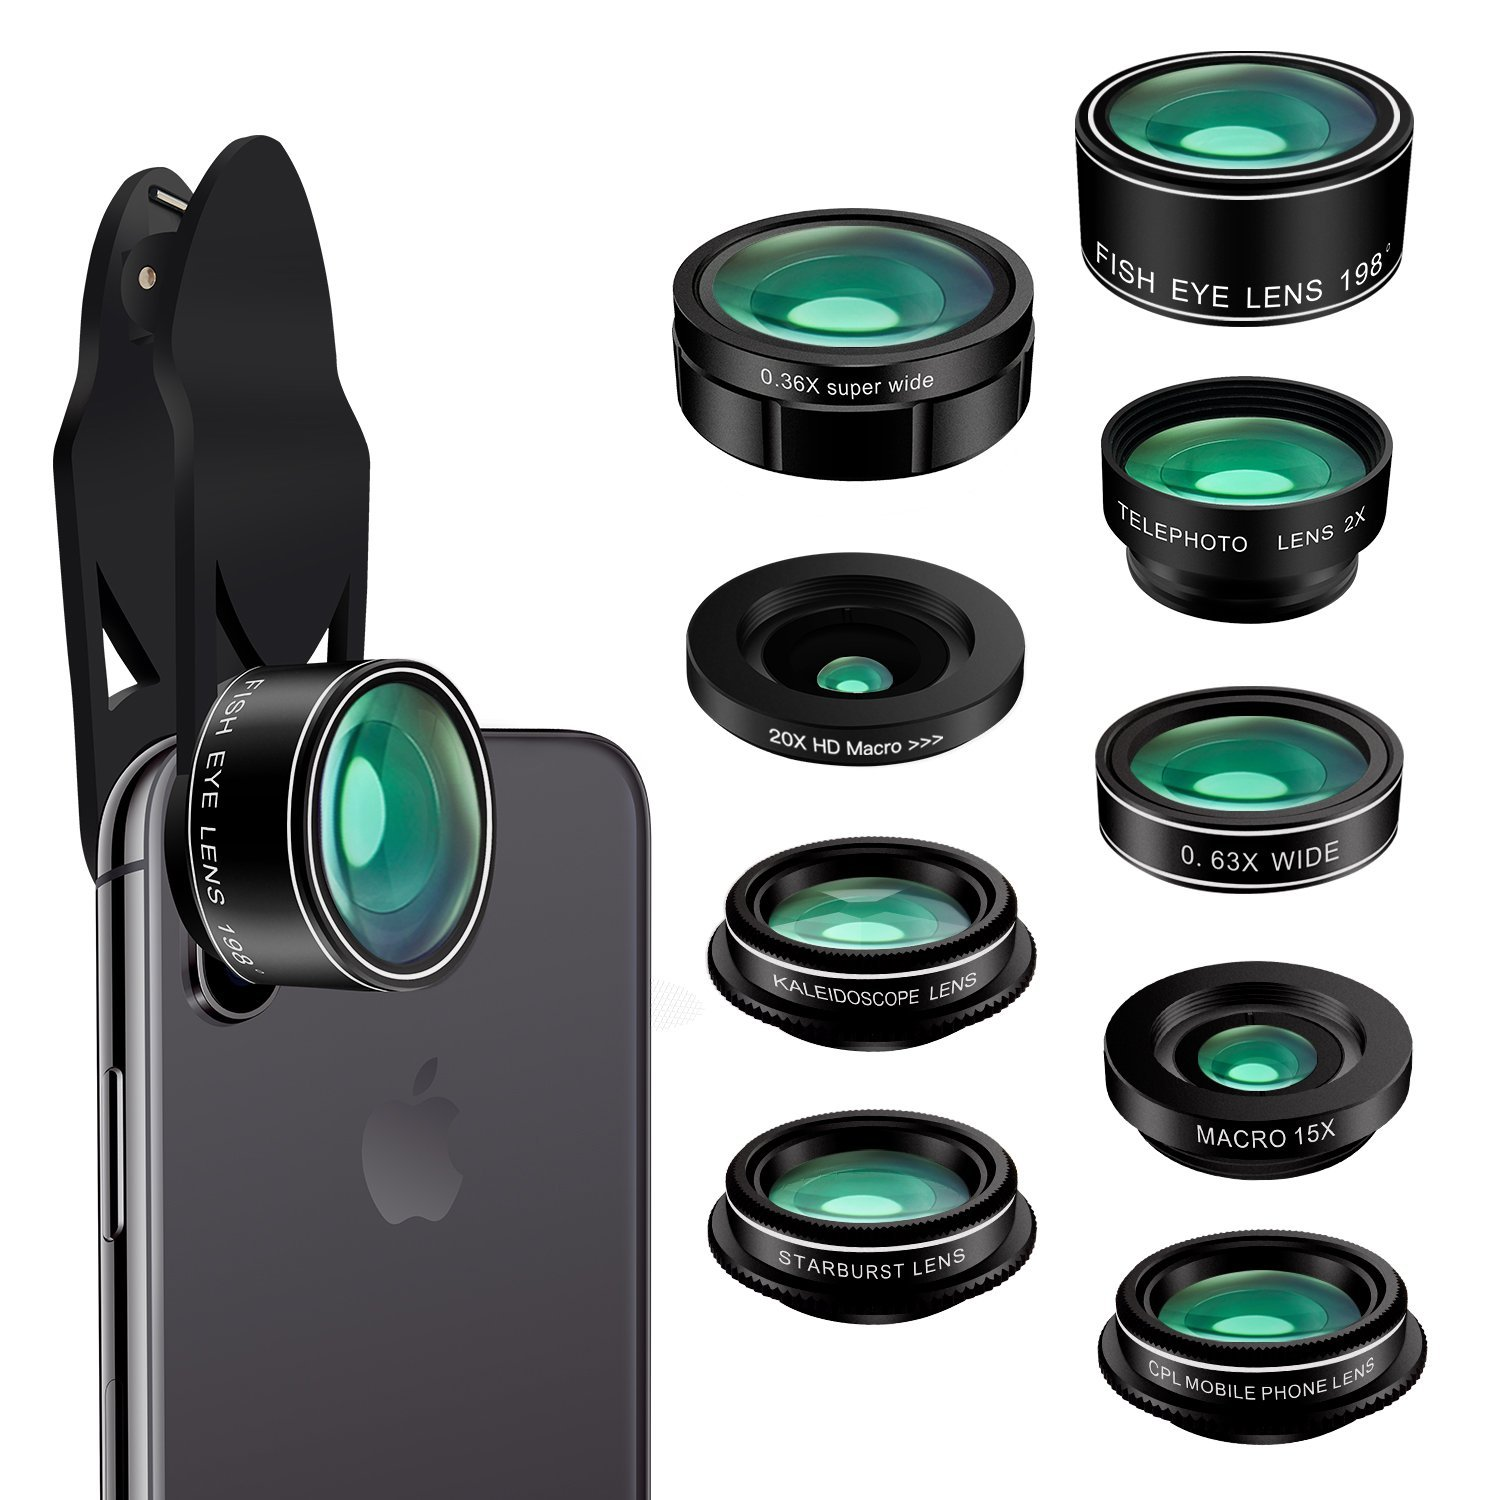 3 in 1 Clip fish eye lens camera lens kit for mobile phone camera wide angle lens